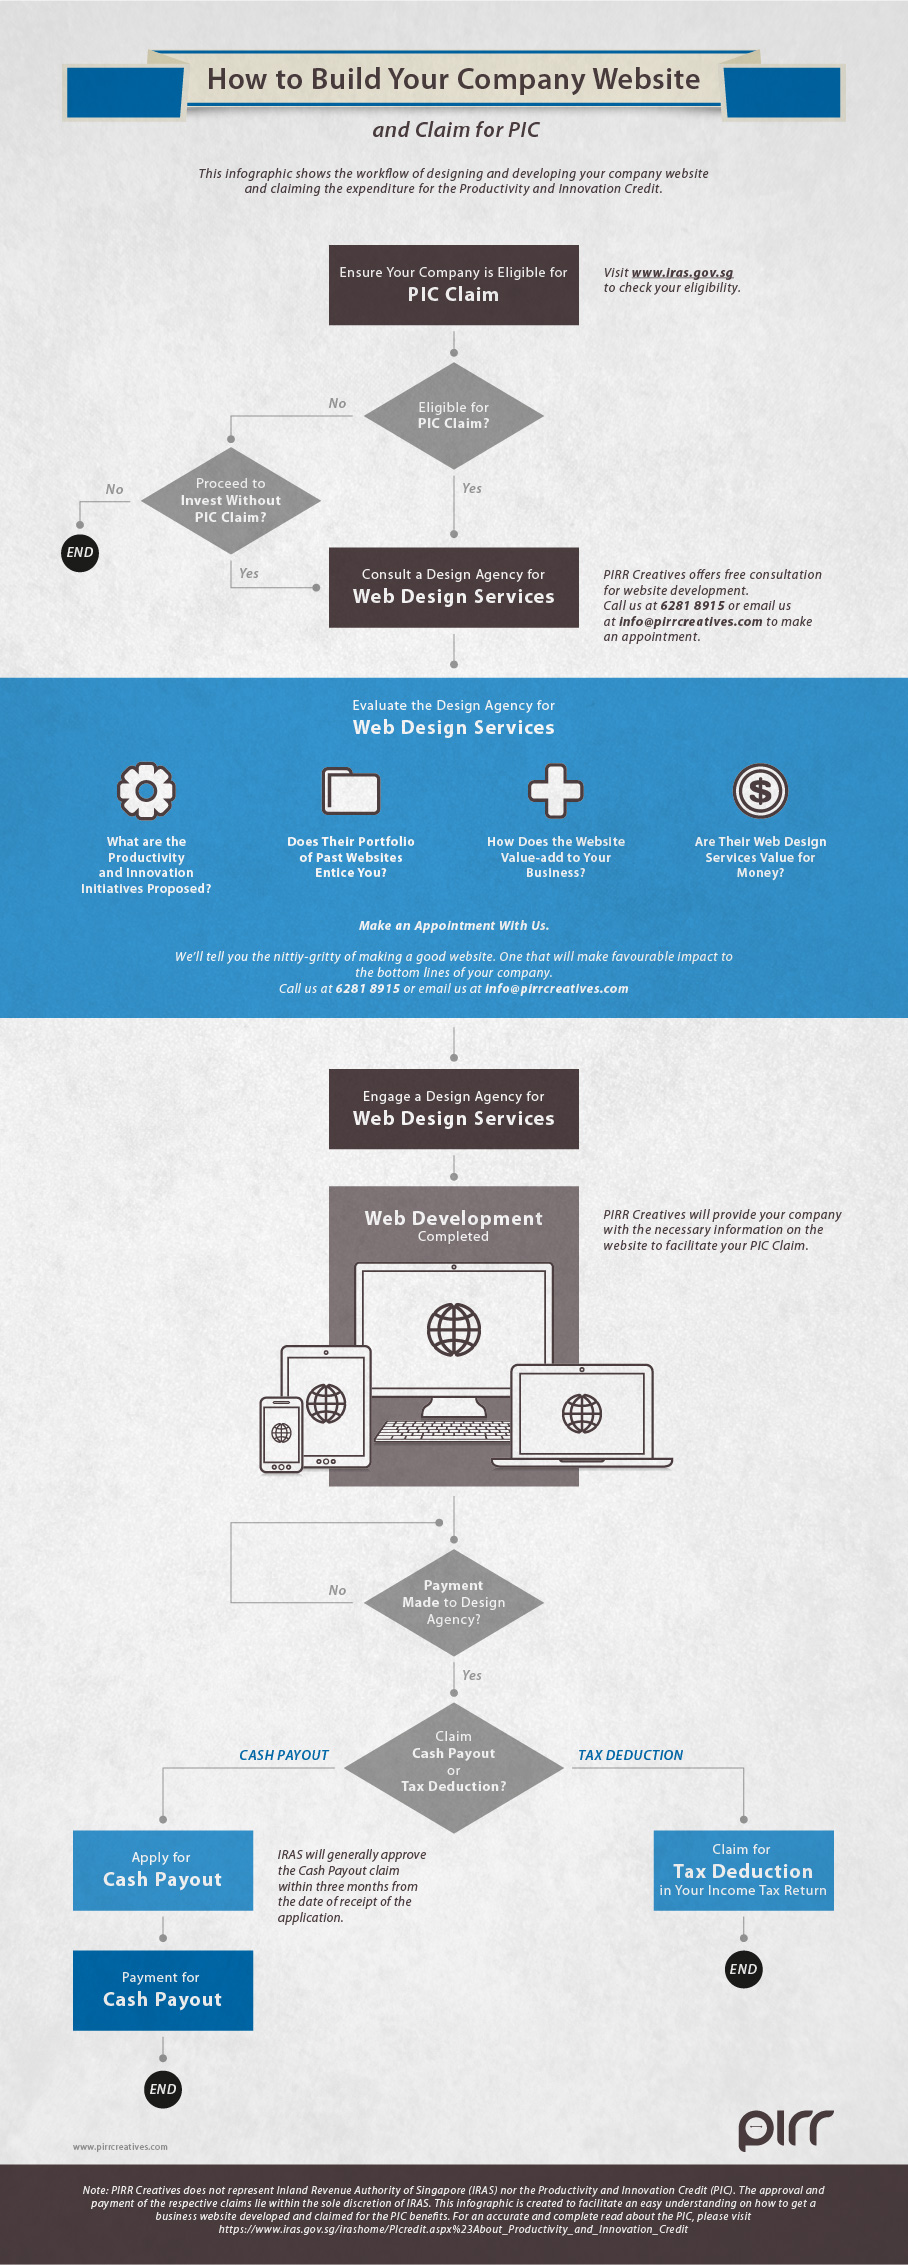 infographic design how to build your company website claim pic